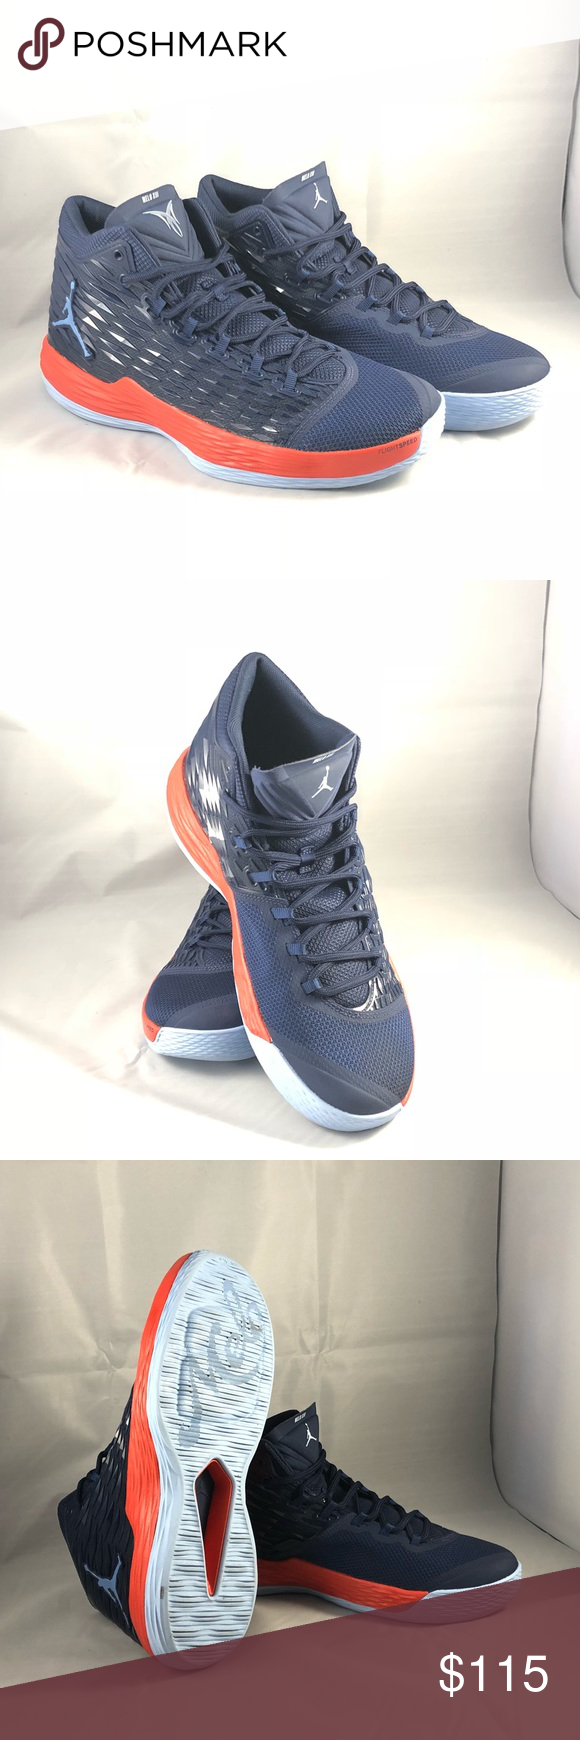 615d09884b66 Nike Air Jordan Melo M13 SZ 11 Midnight Navy New without box. Shoe number  881562  406 Nike Air Jordan Melo M13 Carmelo Anthony Nike Shoes Sneakers